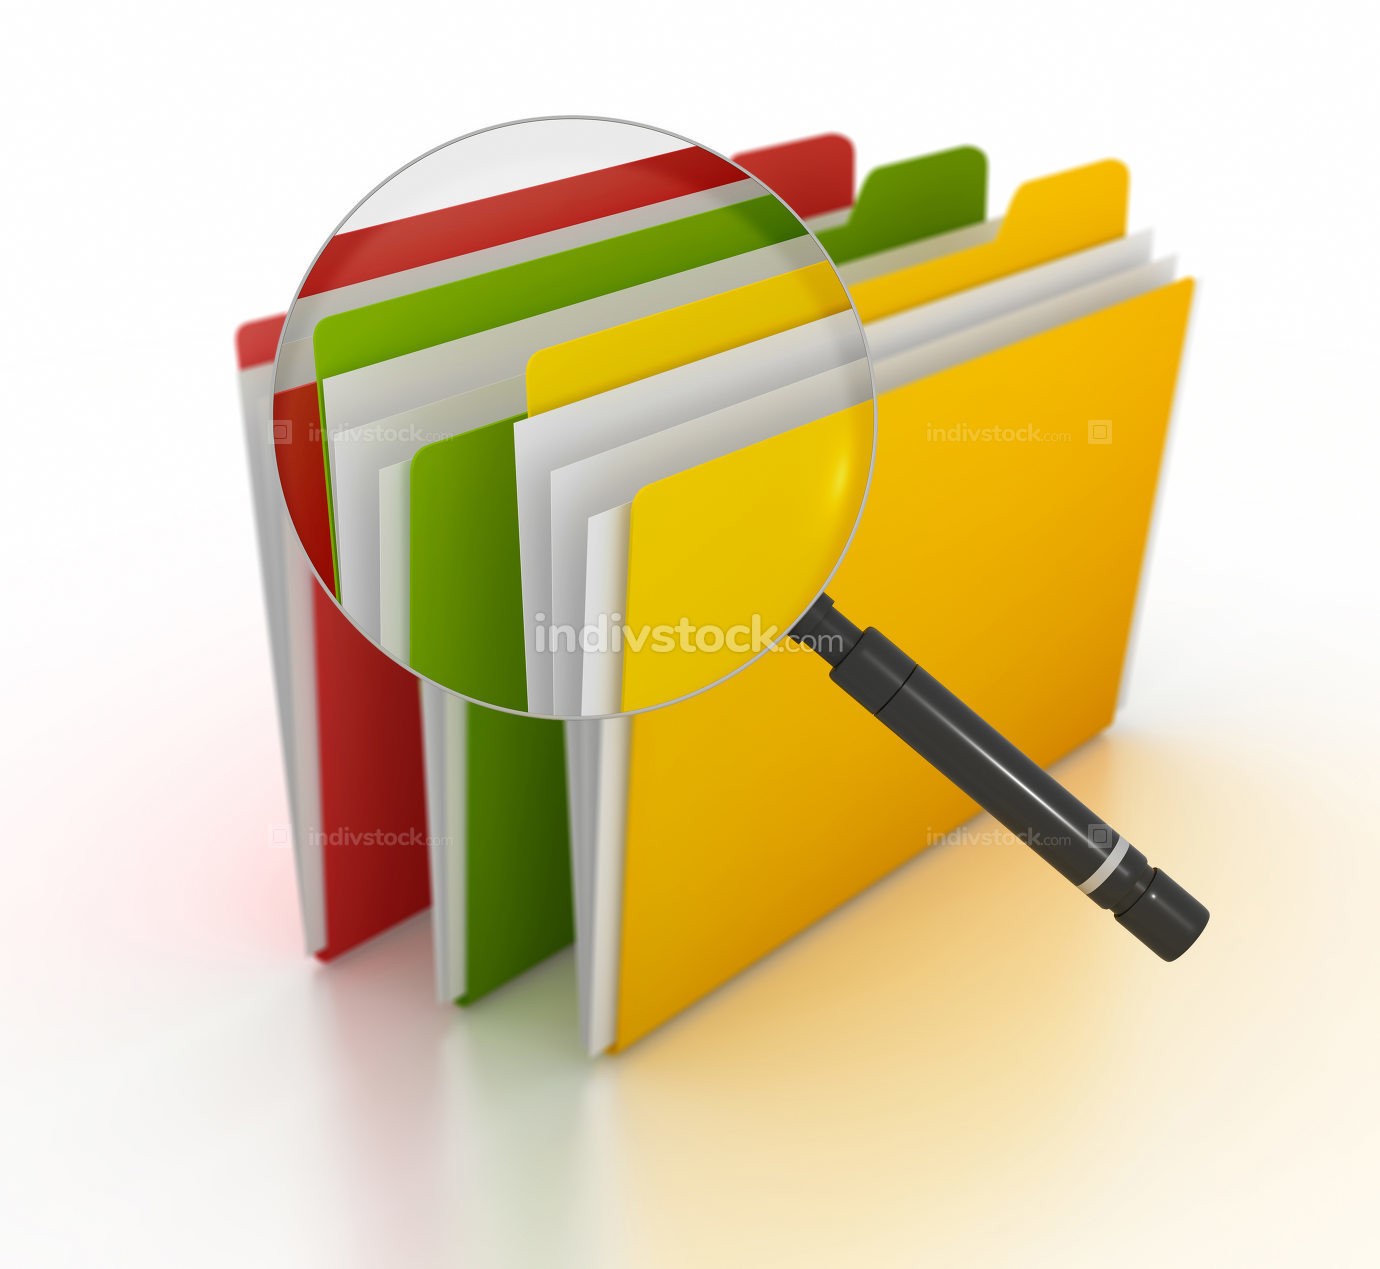 Searching file 3d rendered image